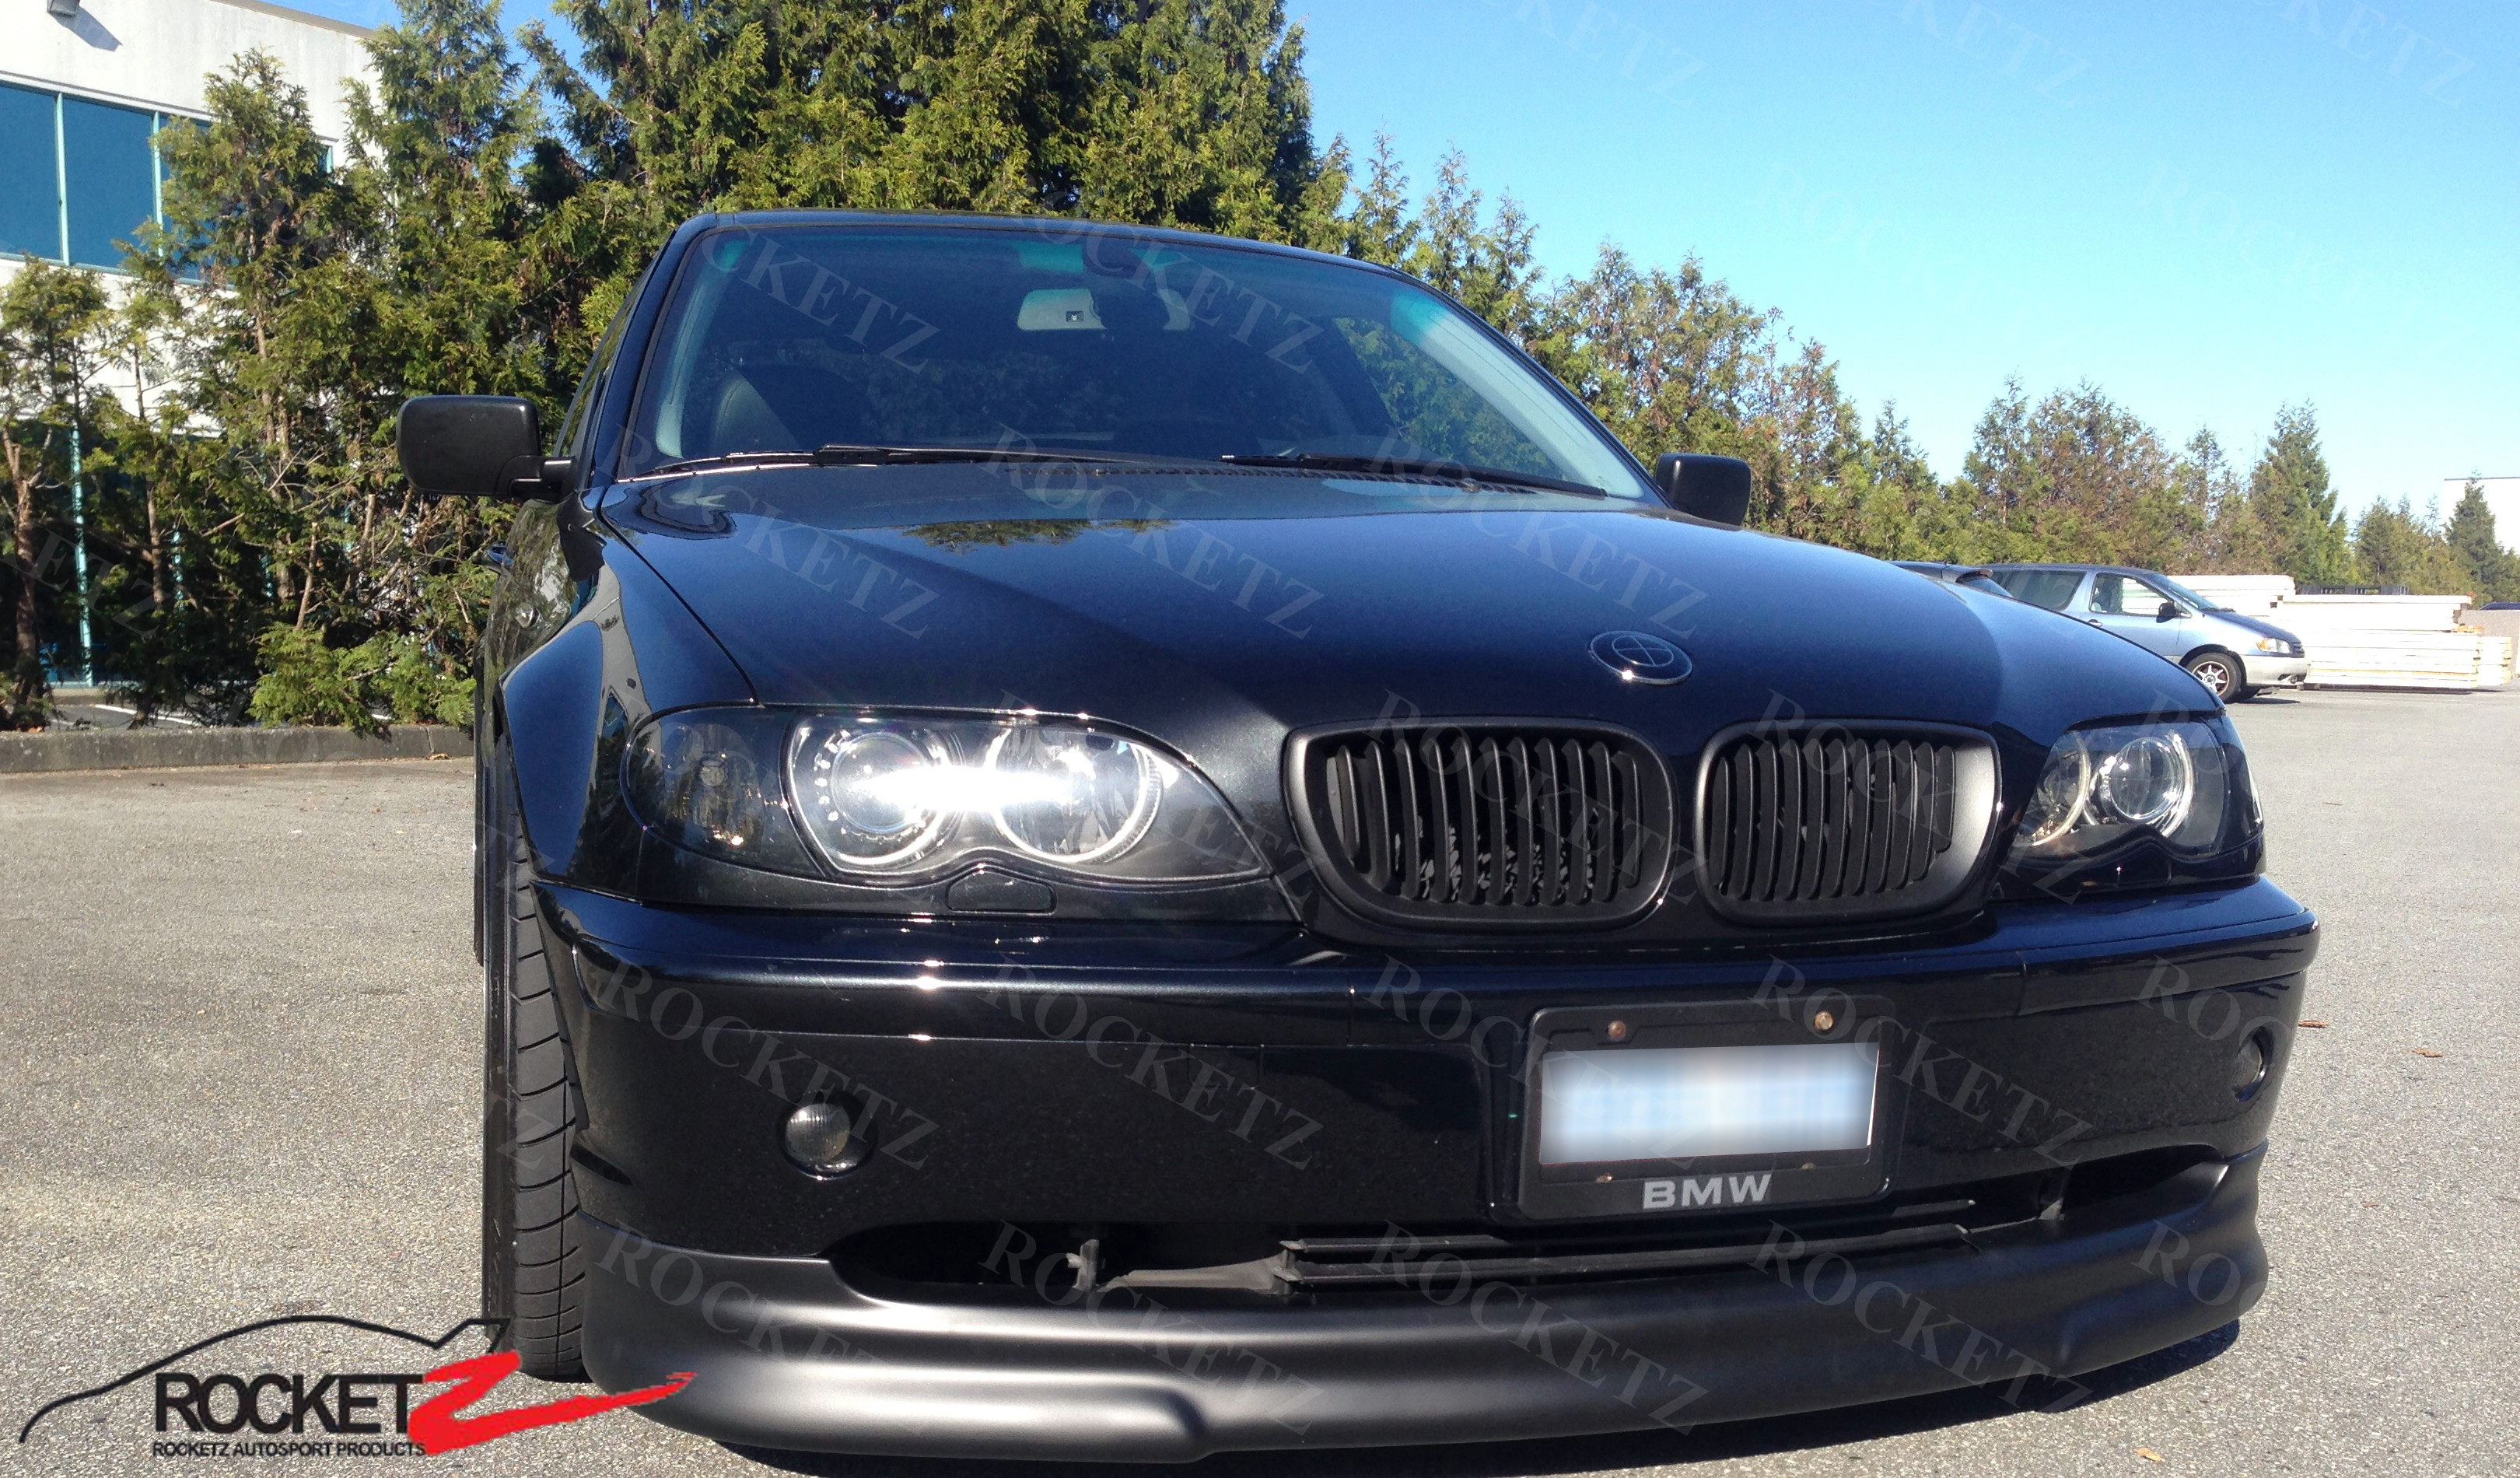 Details About 03 05 Bmw E46 Euro Hm Style Front Lip Facelift 4dr Sedan Usa Canada